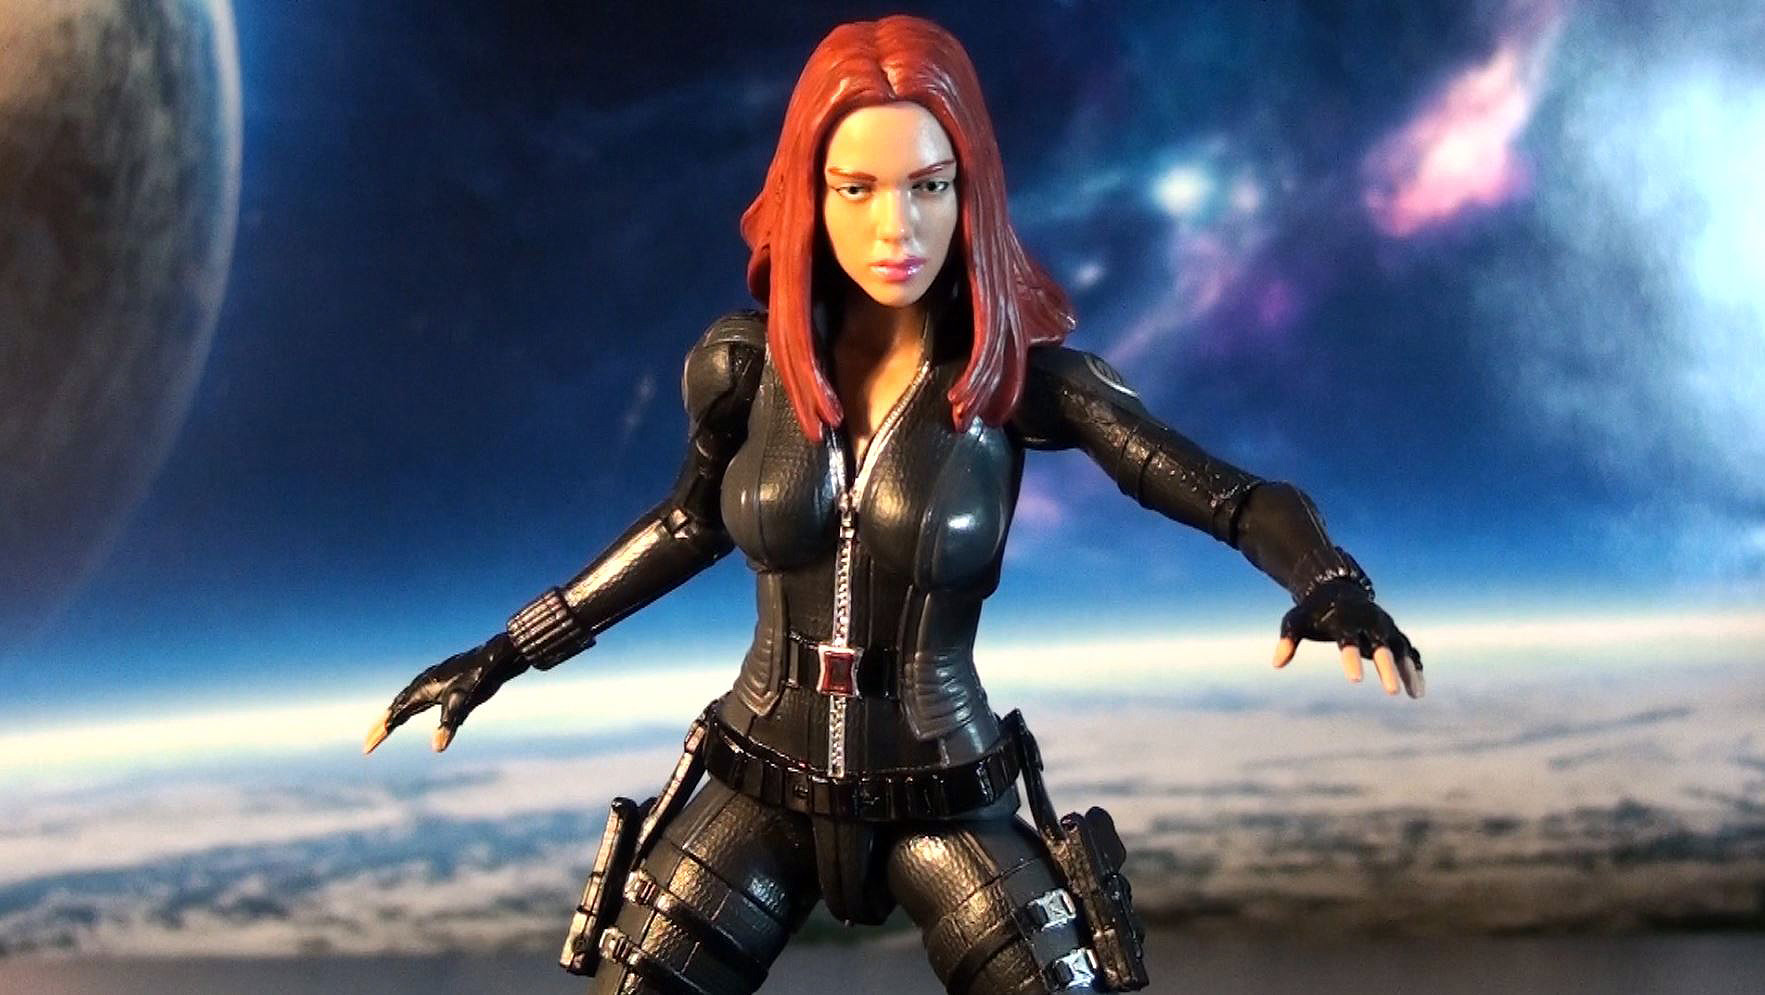 r316 hasbro marvel legends infinite series black widow cap 2 winter soldier review welcome. Black Bedroom Furniture Sets. Home Design Ideas